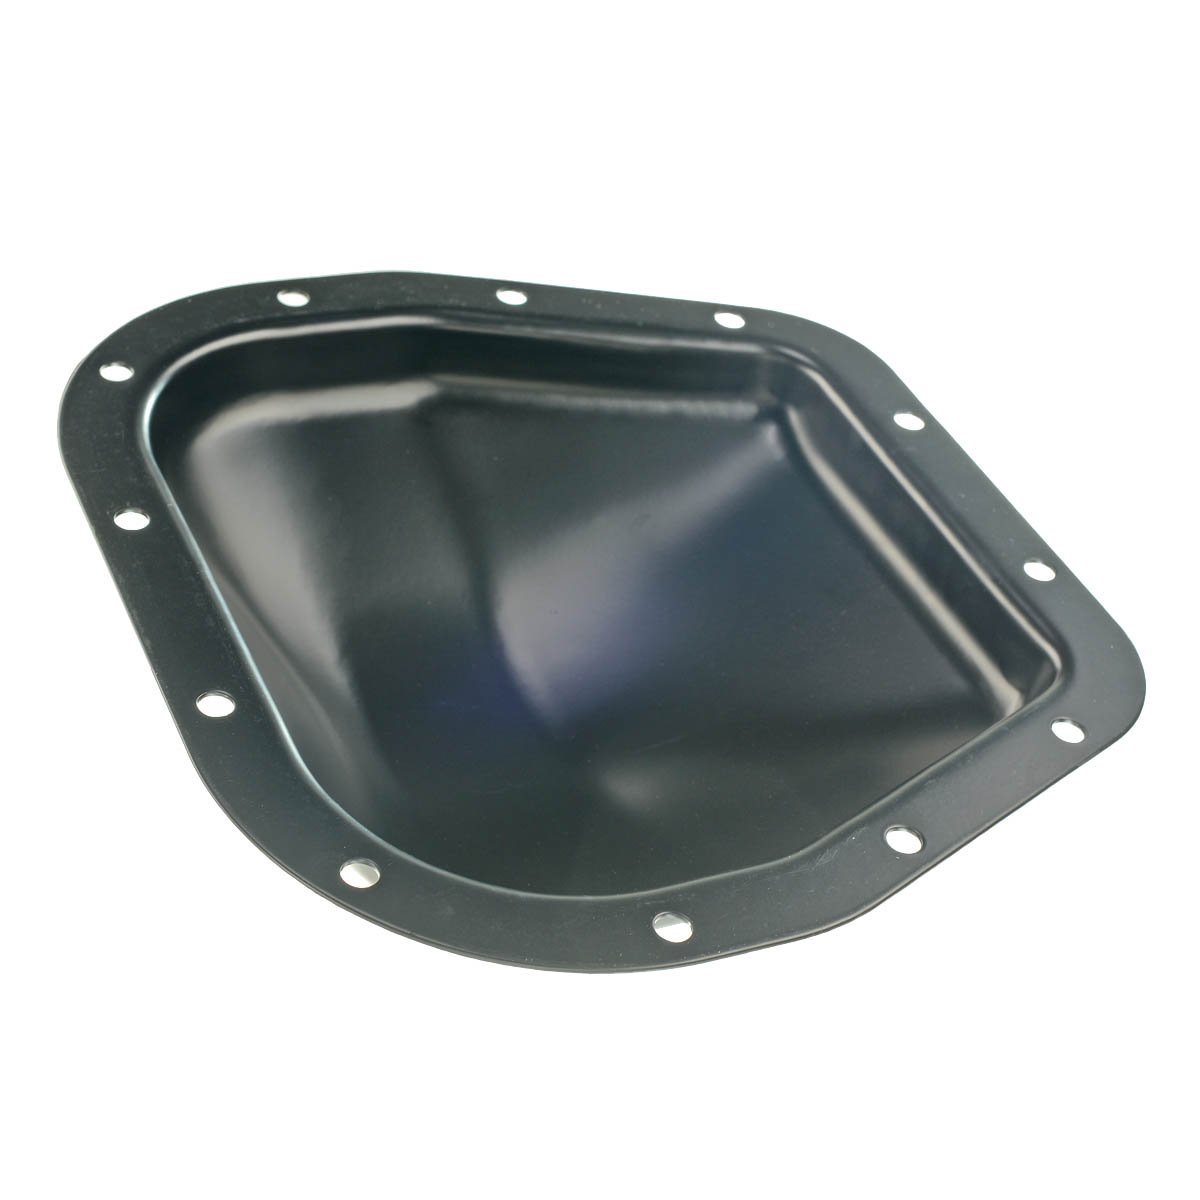 Rear Differential Cover for Lincoln Navigator 1998-2002 Mark LT Ford F-150 F-250 Lobo Expedition E-150 Econoline YTAUTOPARTS